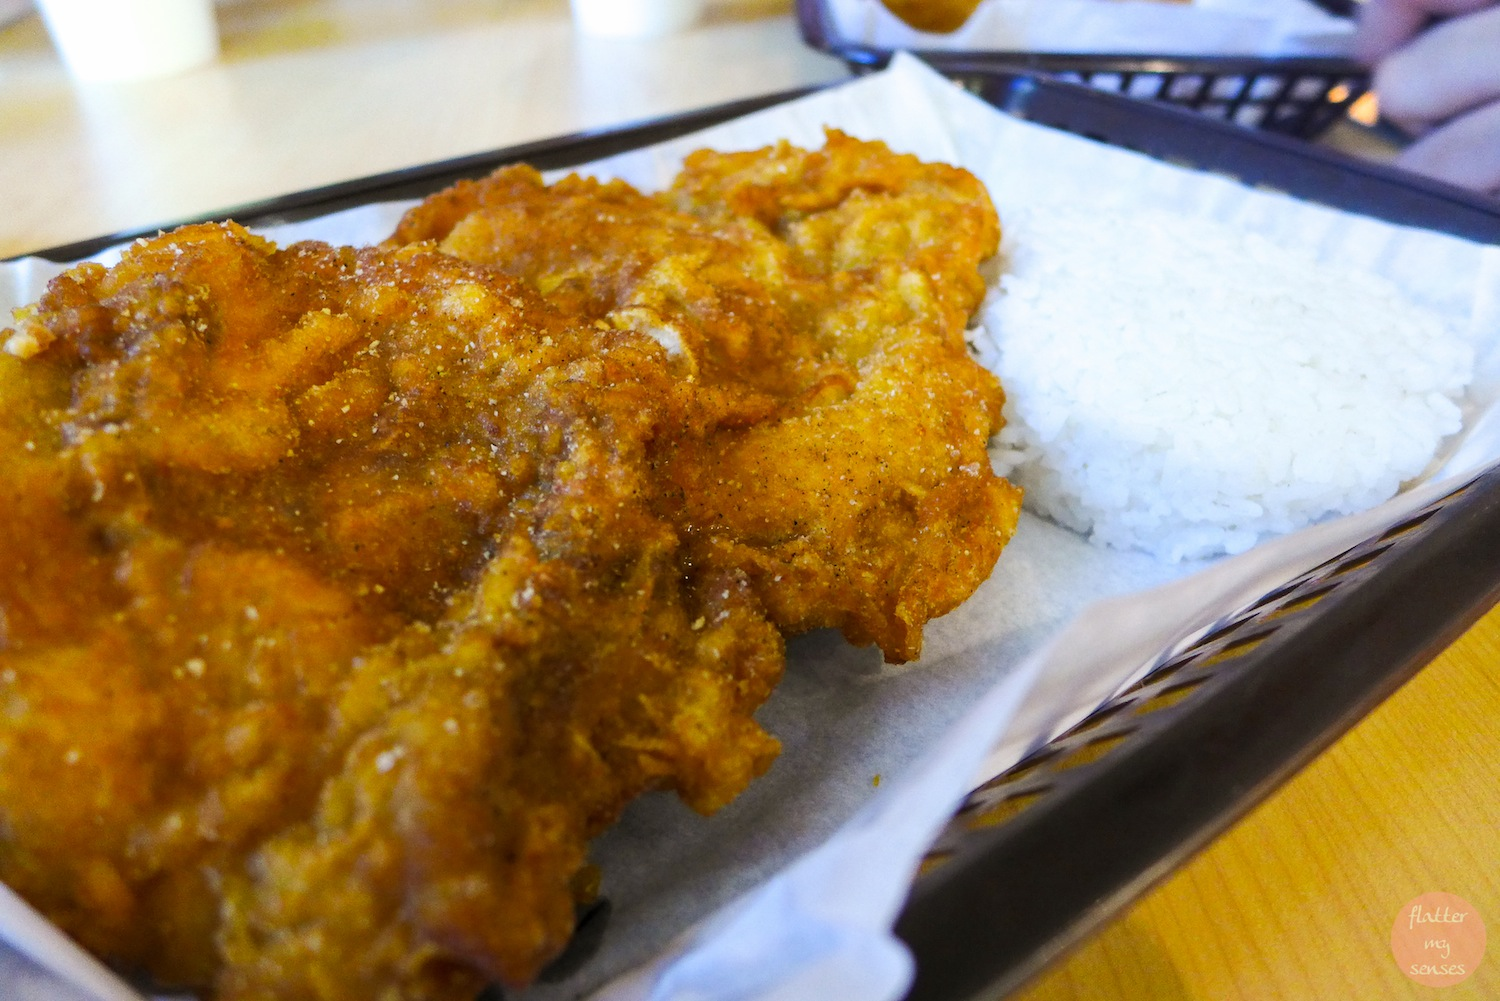 Original Large Fried Chicken (Php 110) + Php 35 for the rice & drink